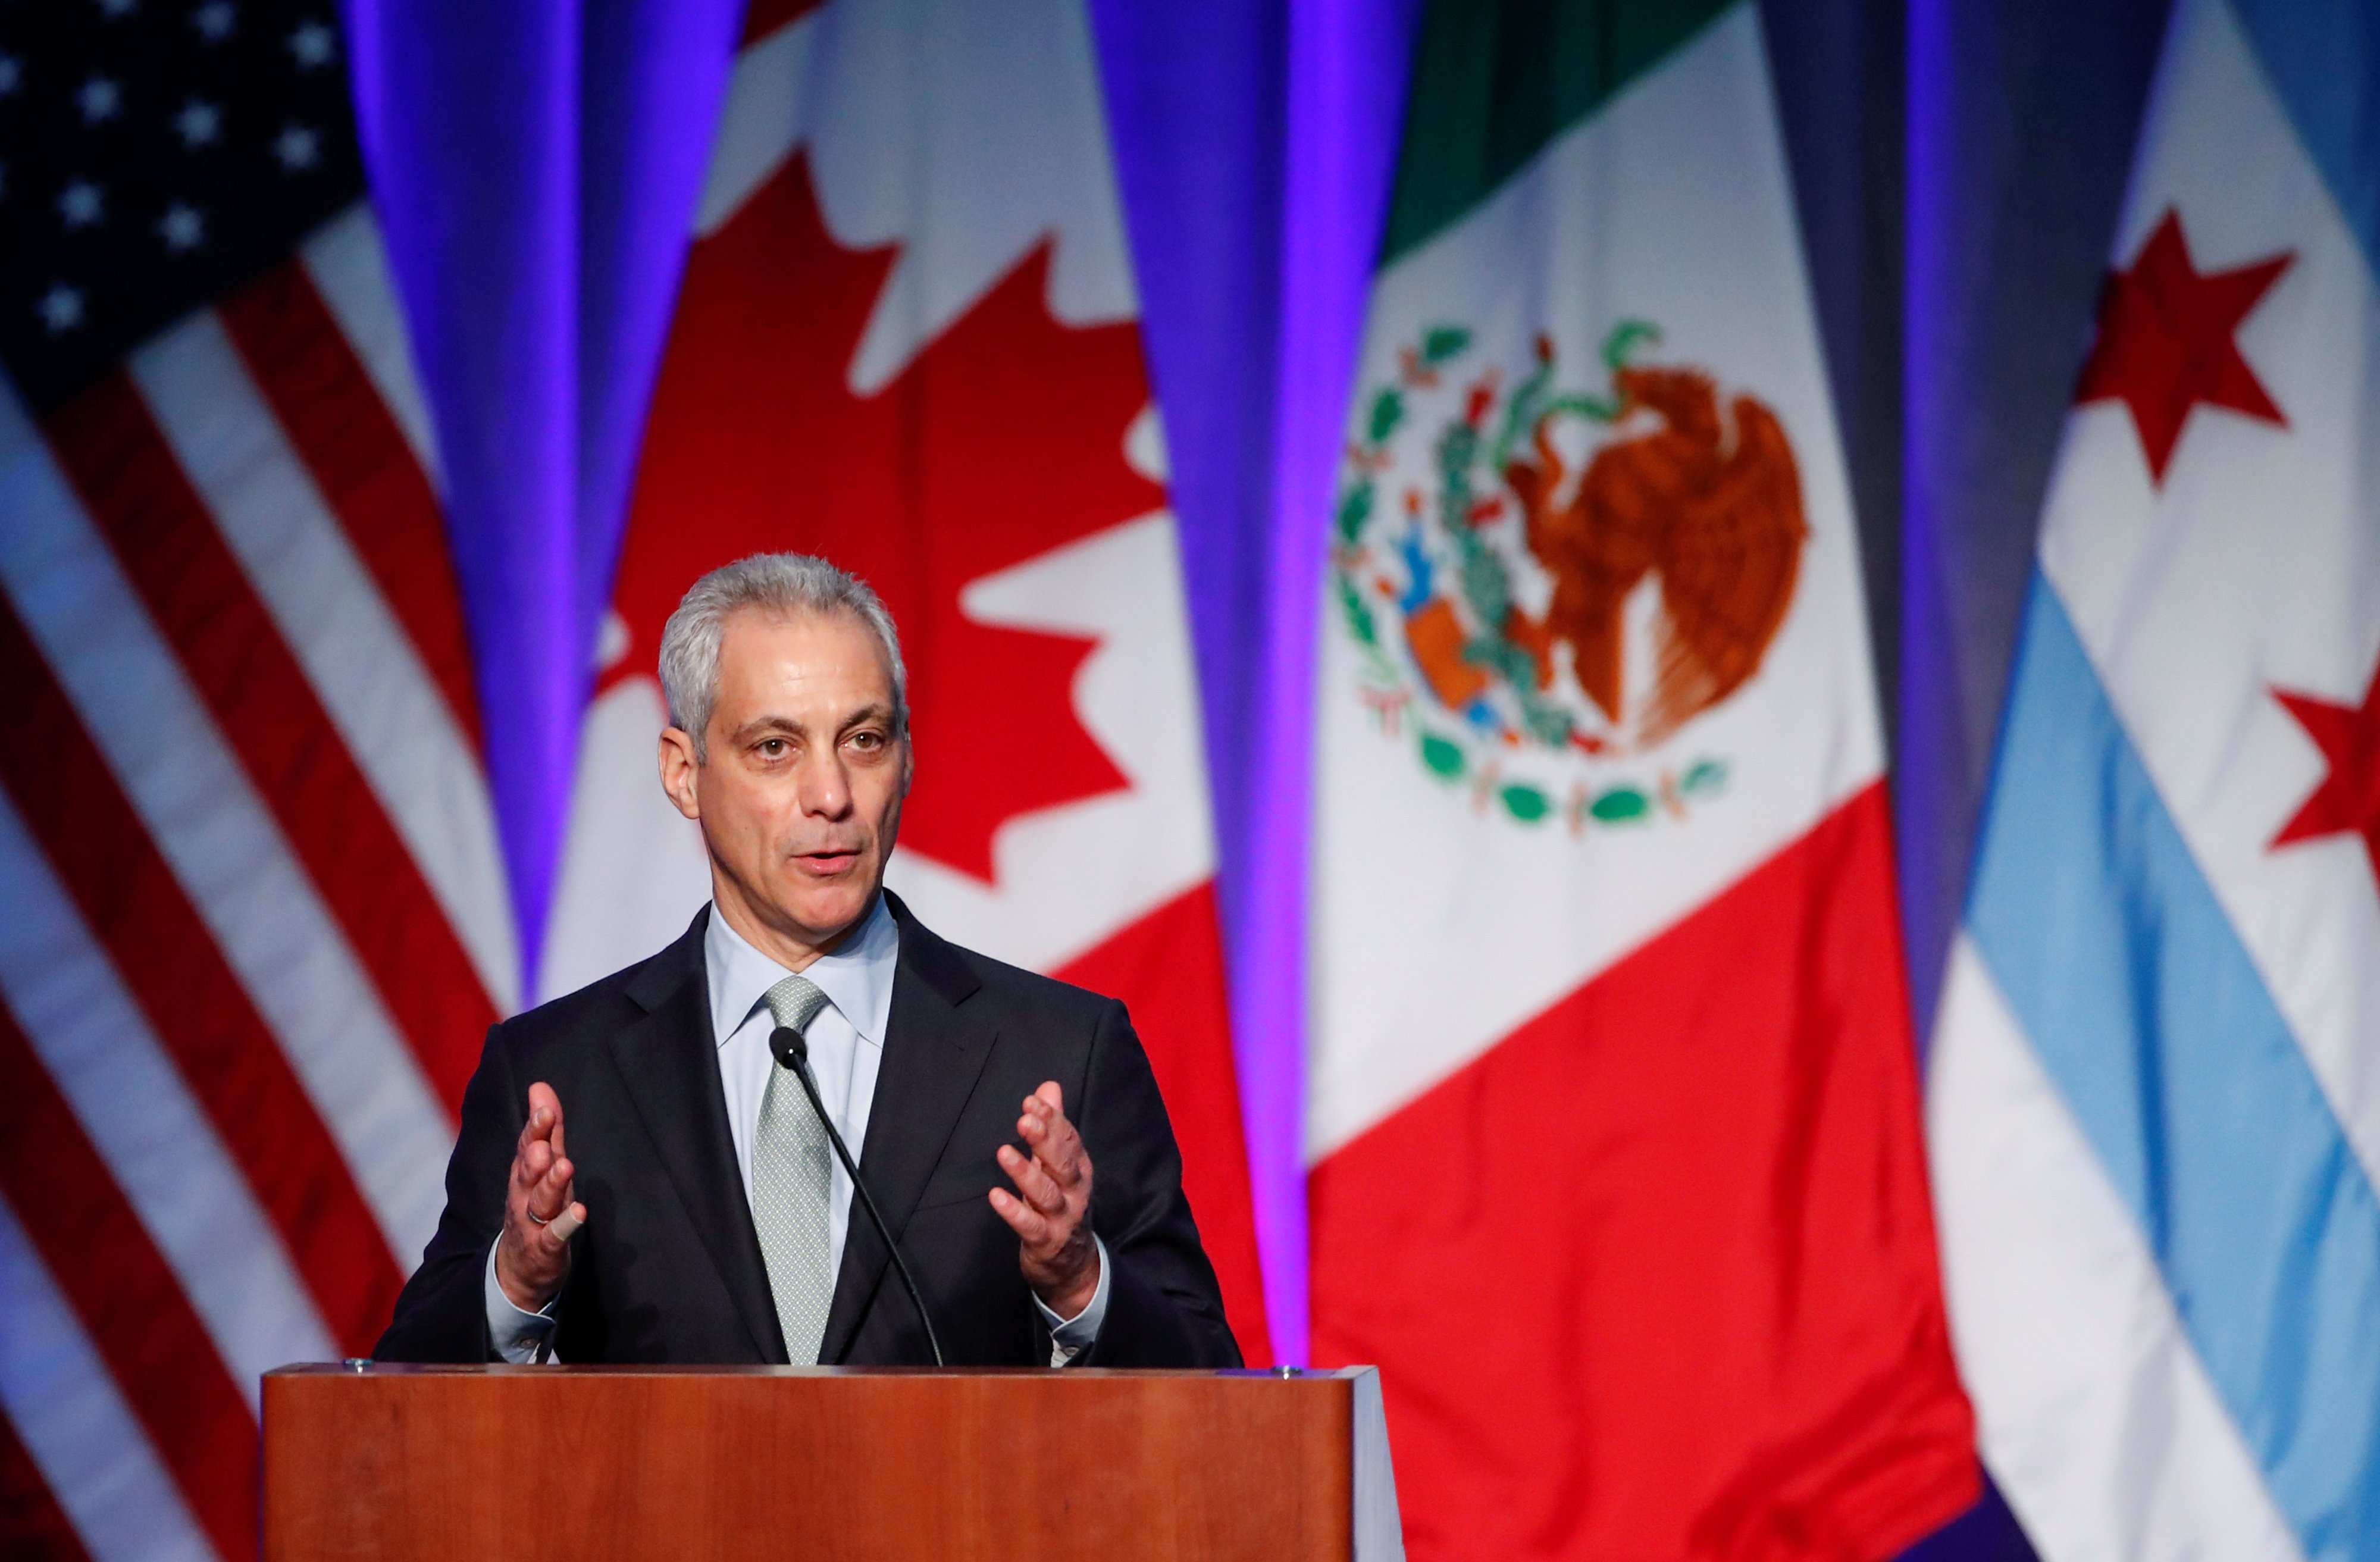 Chicago Mayor Rahm Emanuel speaks during the North American Climate Summit in Chicago, Illinois, U.S., December 5, 2017. REUTERS/Kamil Krzaczynski